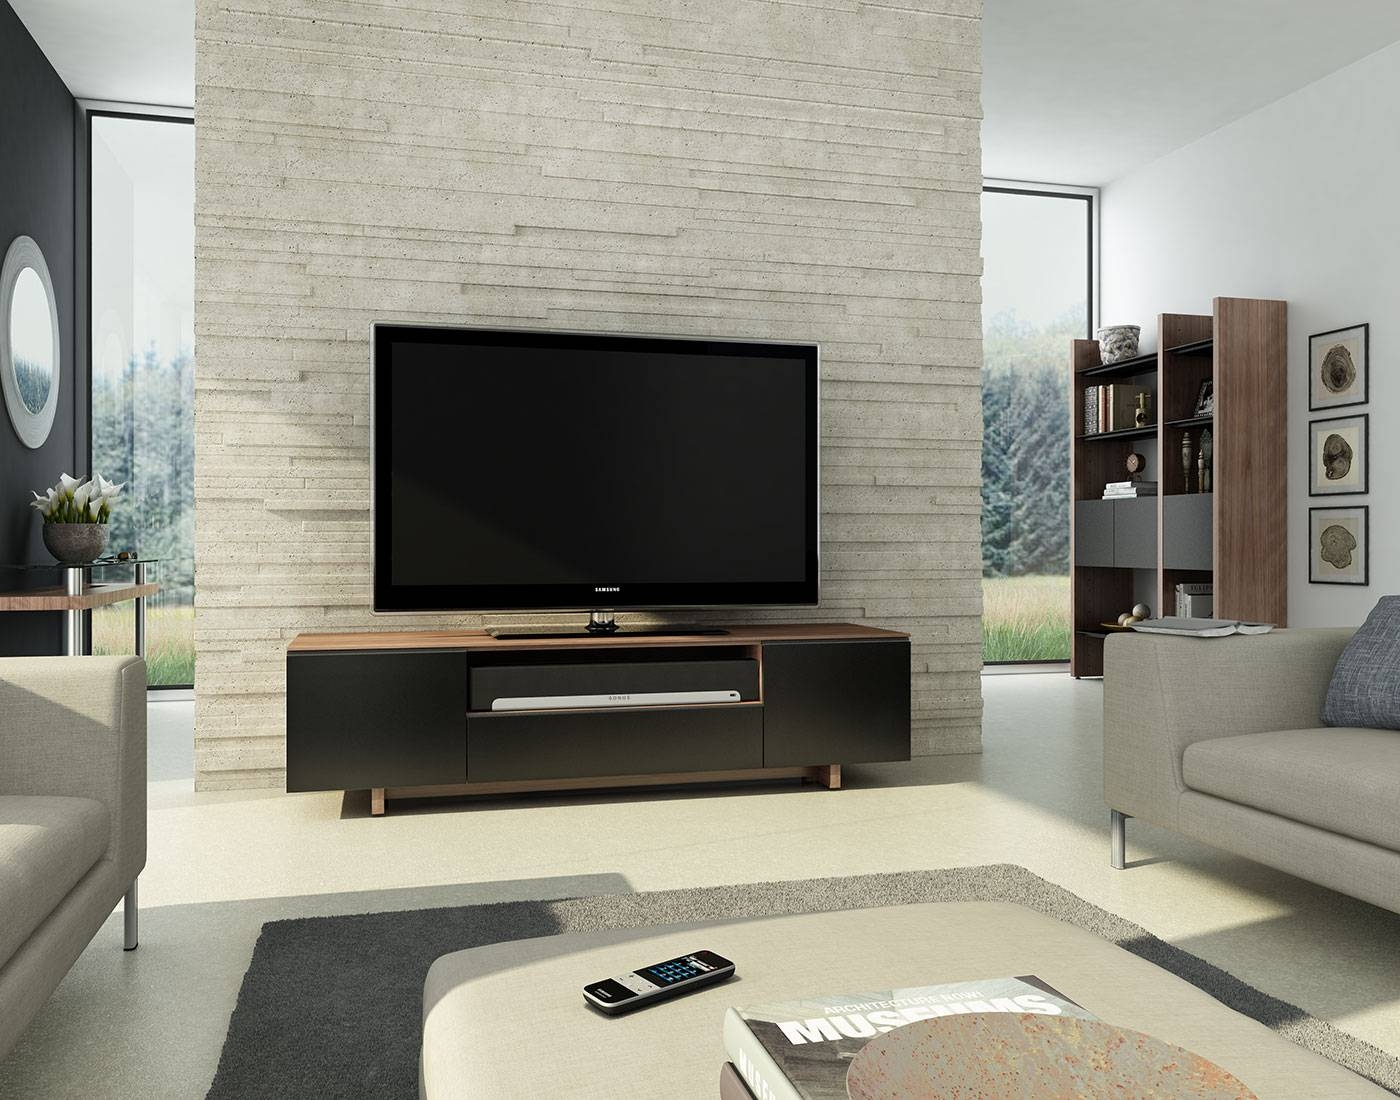 Nora 8239 Tv Stand   Bdi Designer Tv Stands And Cabinets For Home With Sonos Tv Stands (Photo 9 of 15)